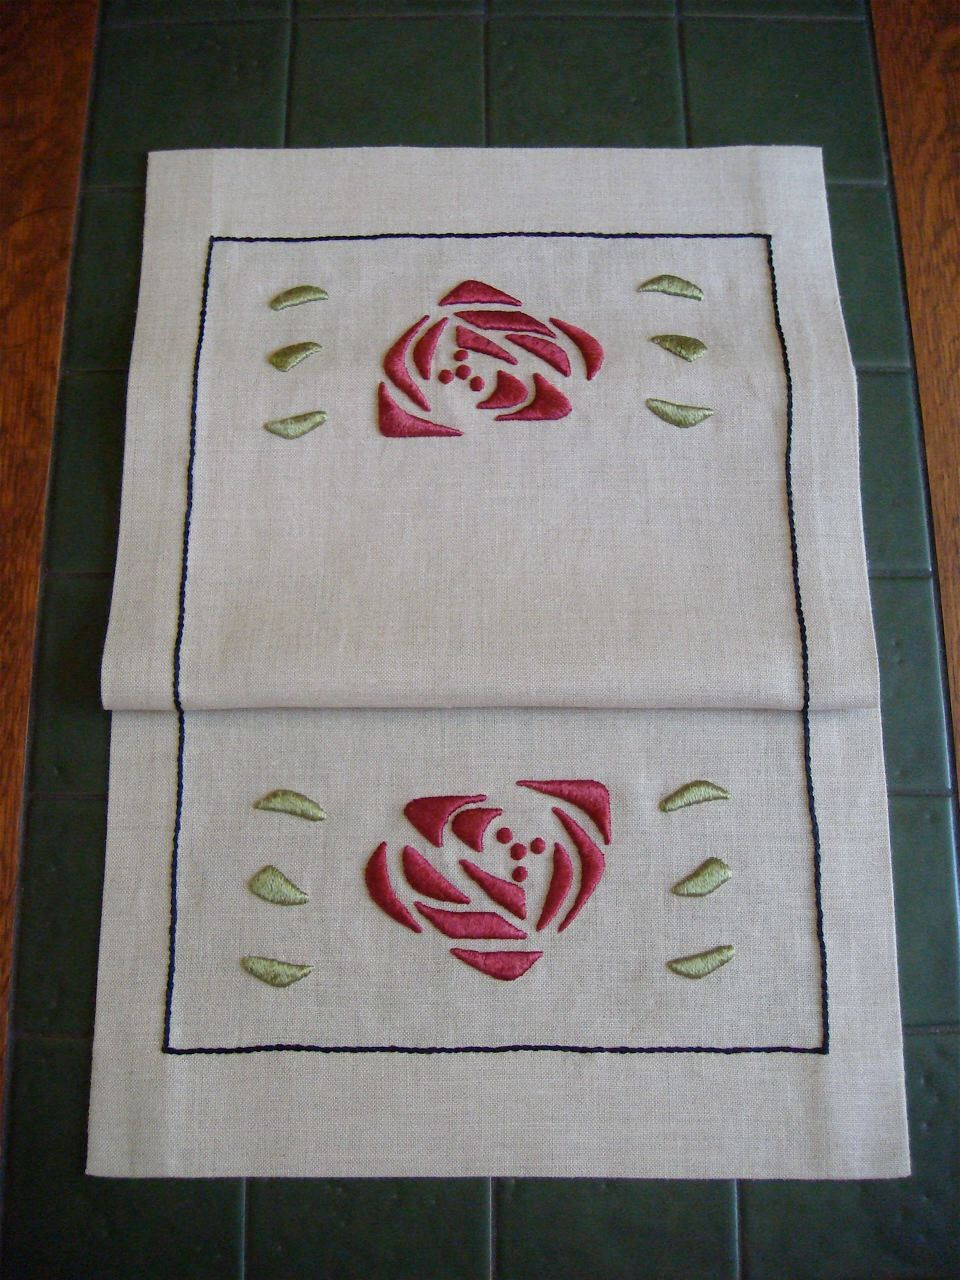 Glasglow Inspired Rose Table Runner Silk Embroidery Kit Arts and Crafts, Craftsman Style by paintbythread on Etsy https://www.etsy.com/listing/125854464/glasglow-inspired-rose-table-runner-silk